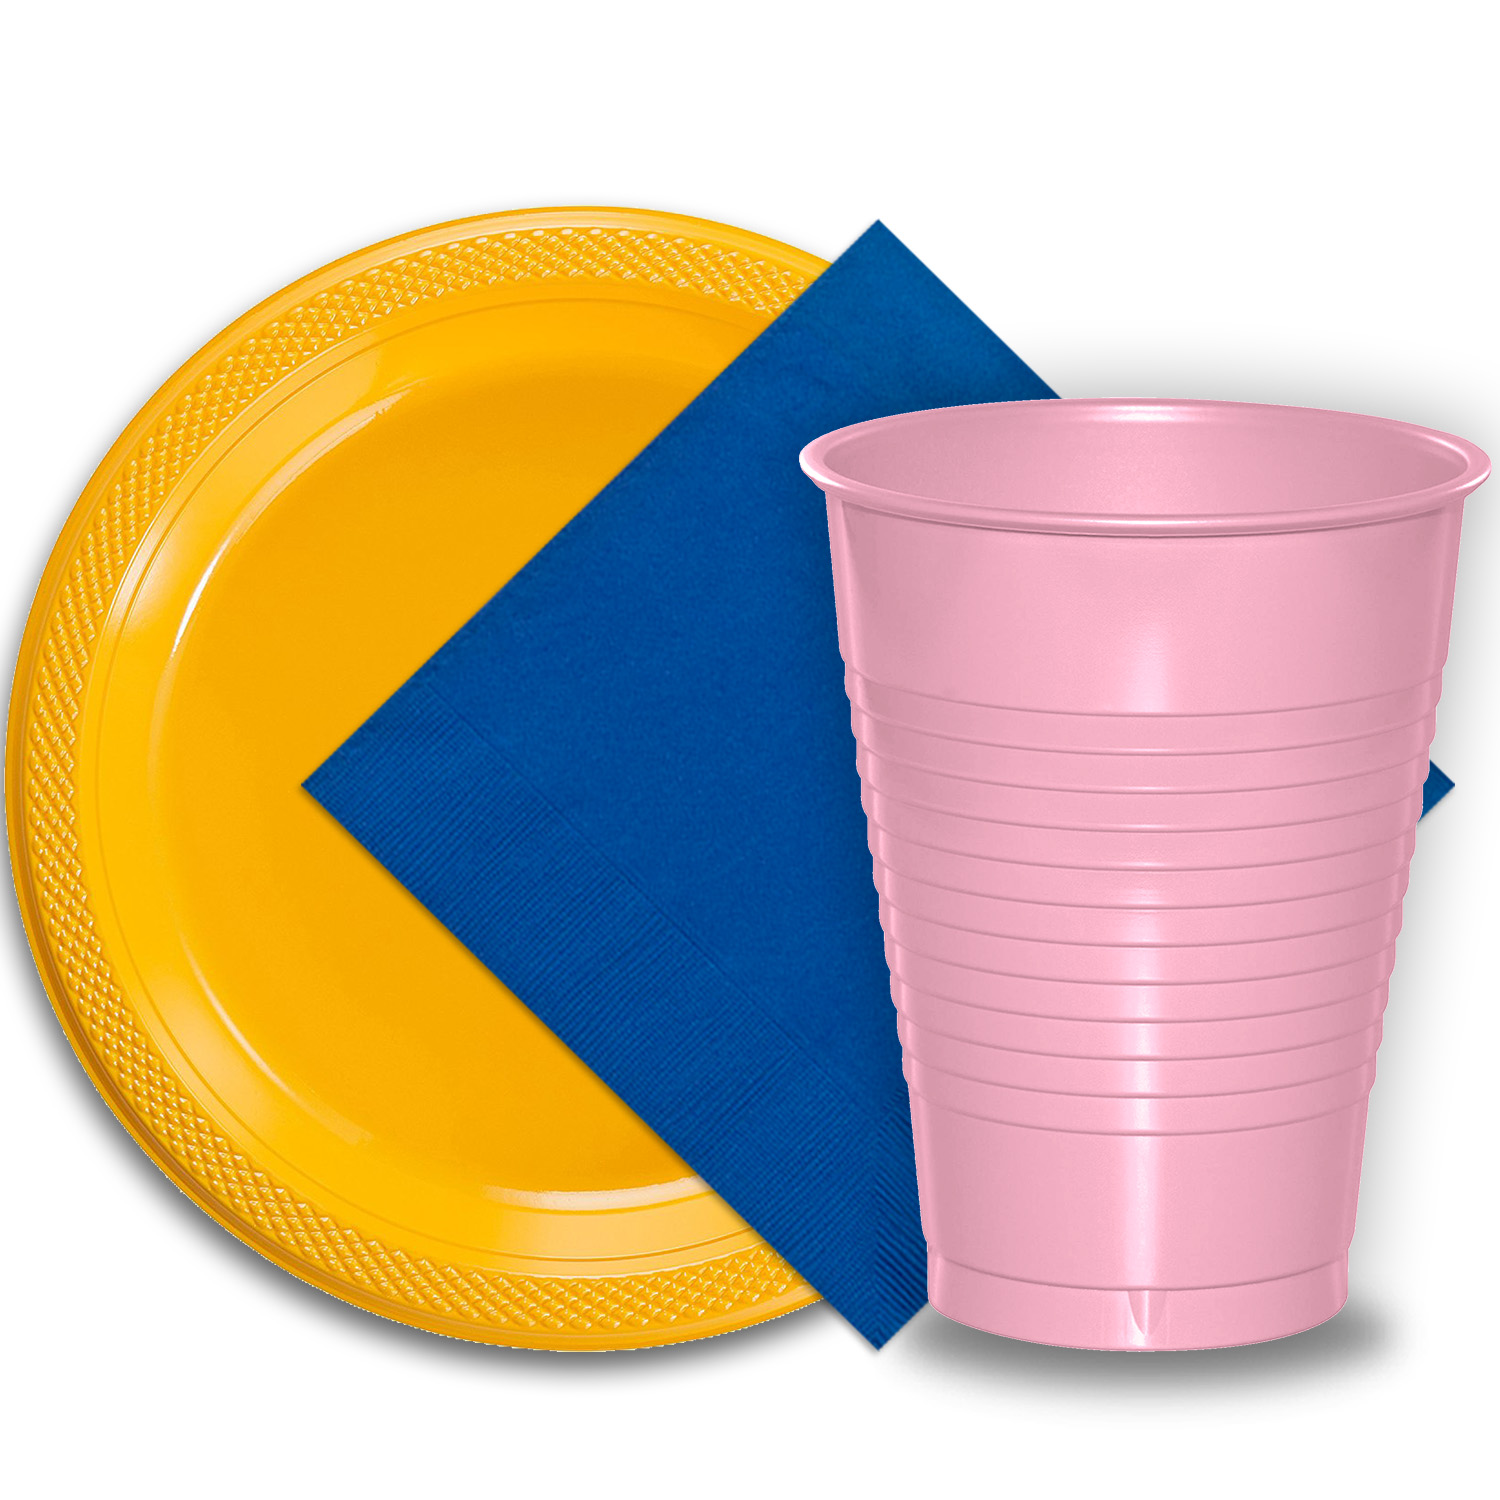 "50 Yellow Plastic Plates (9""), 50 Pink Plastic Cups (12 oz.), and 50 Dark Blue Paper Napkins, Dazzelling Colored Disposable Party Supplies Tableware Set for Fifty Guests."